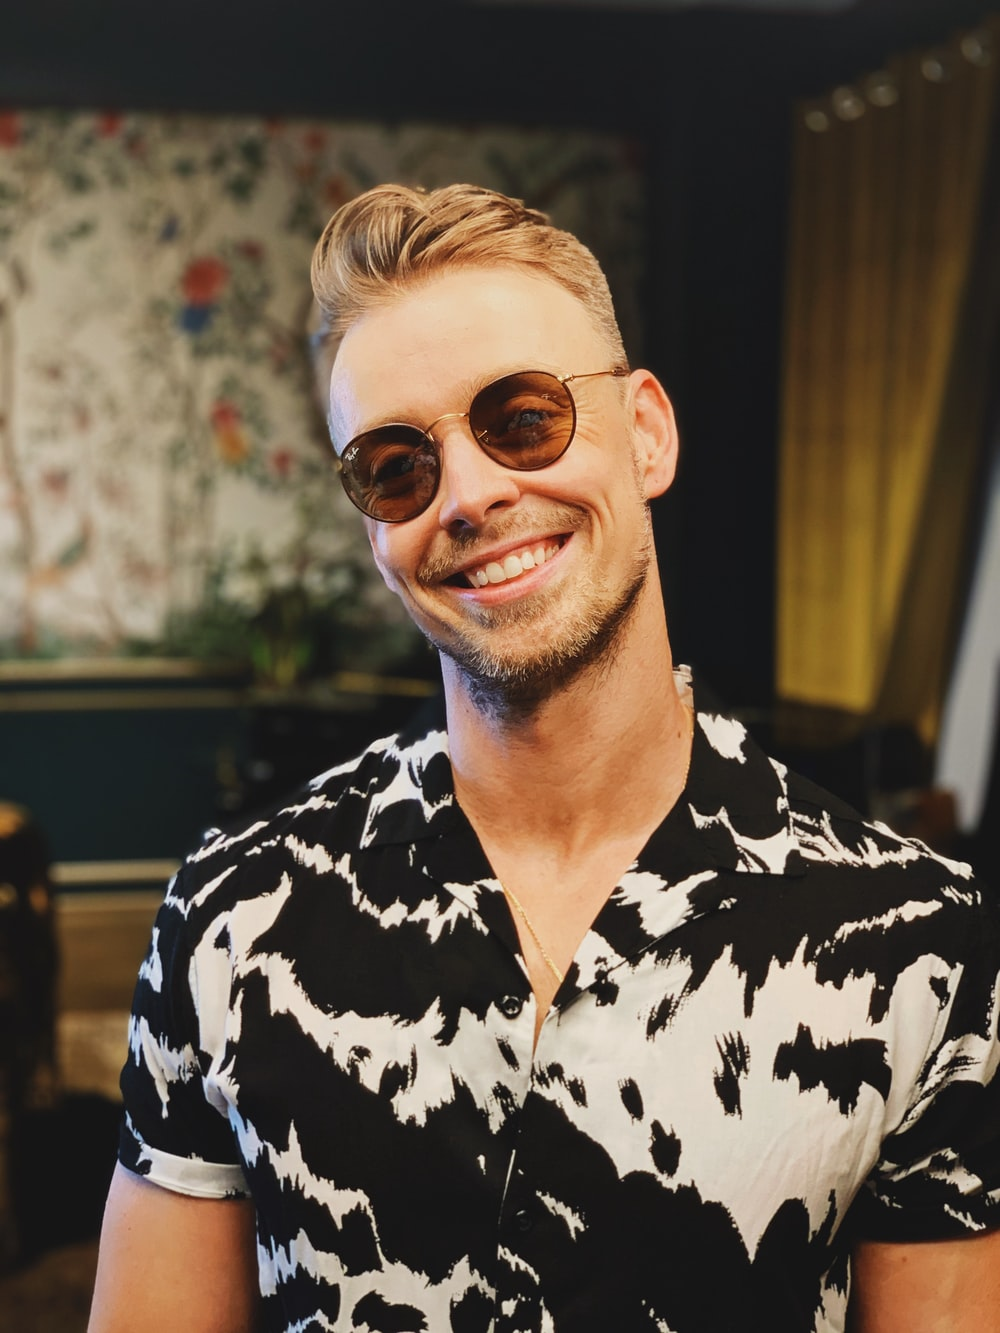 man in black and white floral button up shirt wearing brown sunglasses